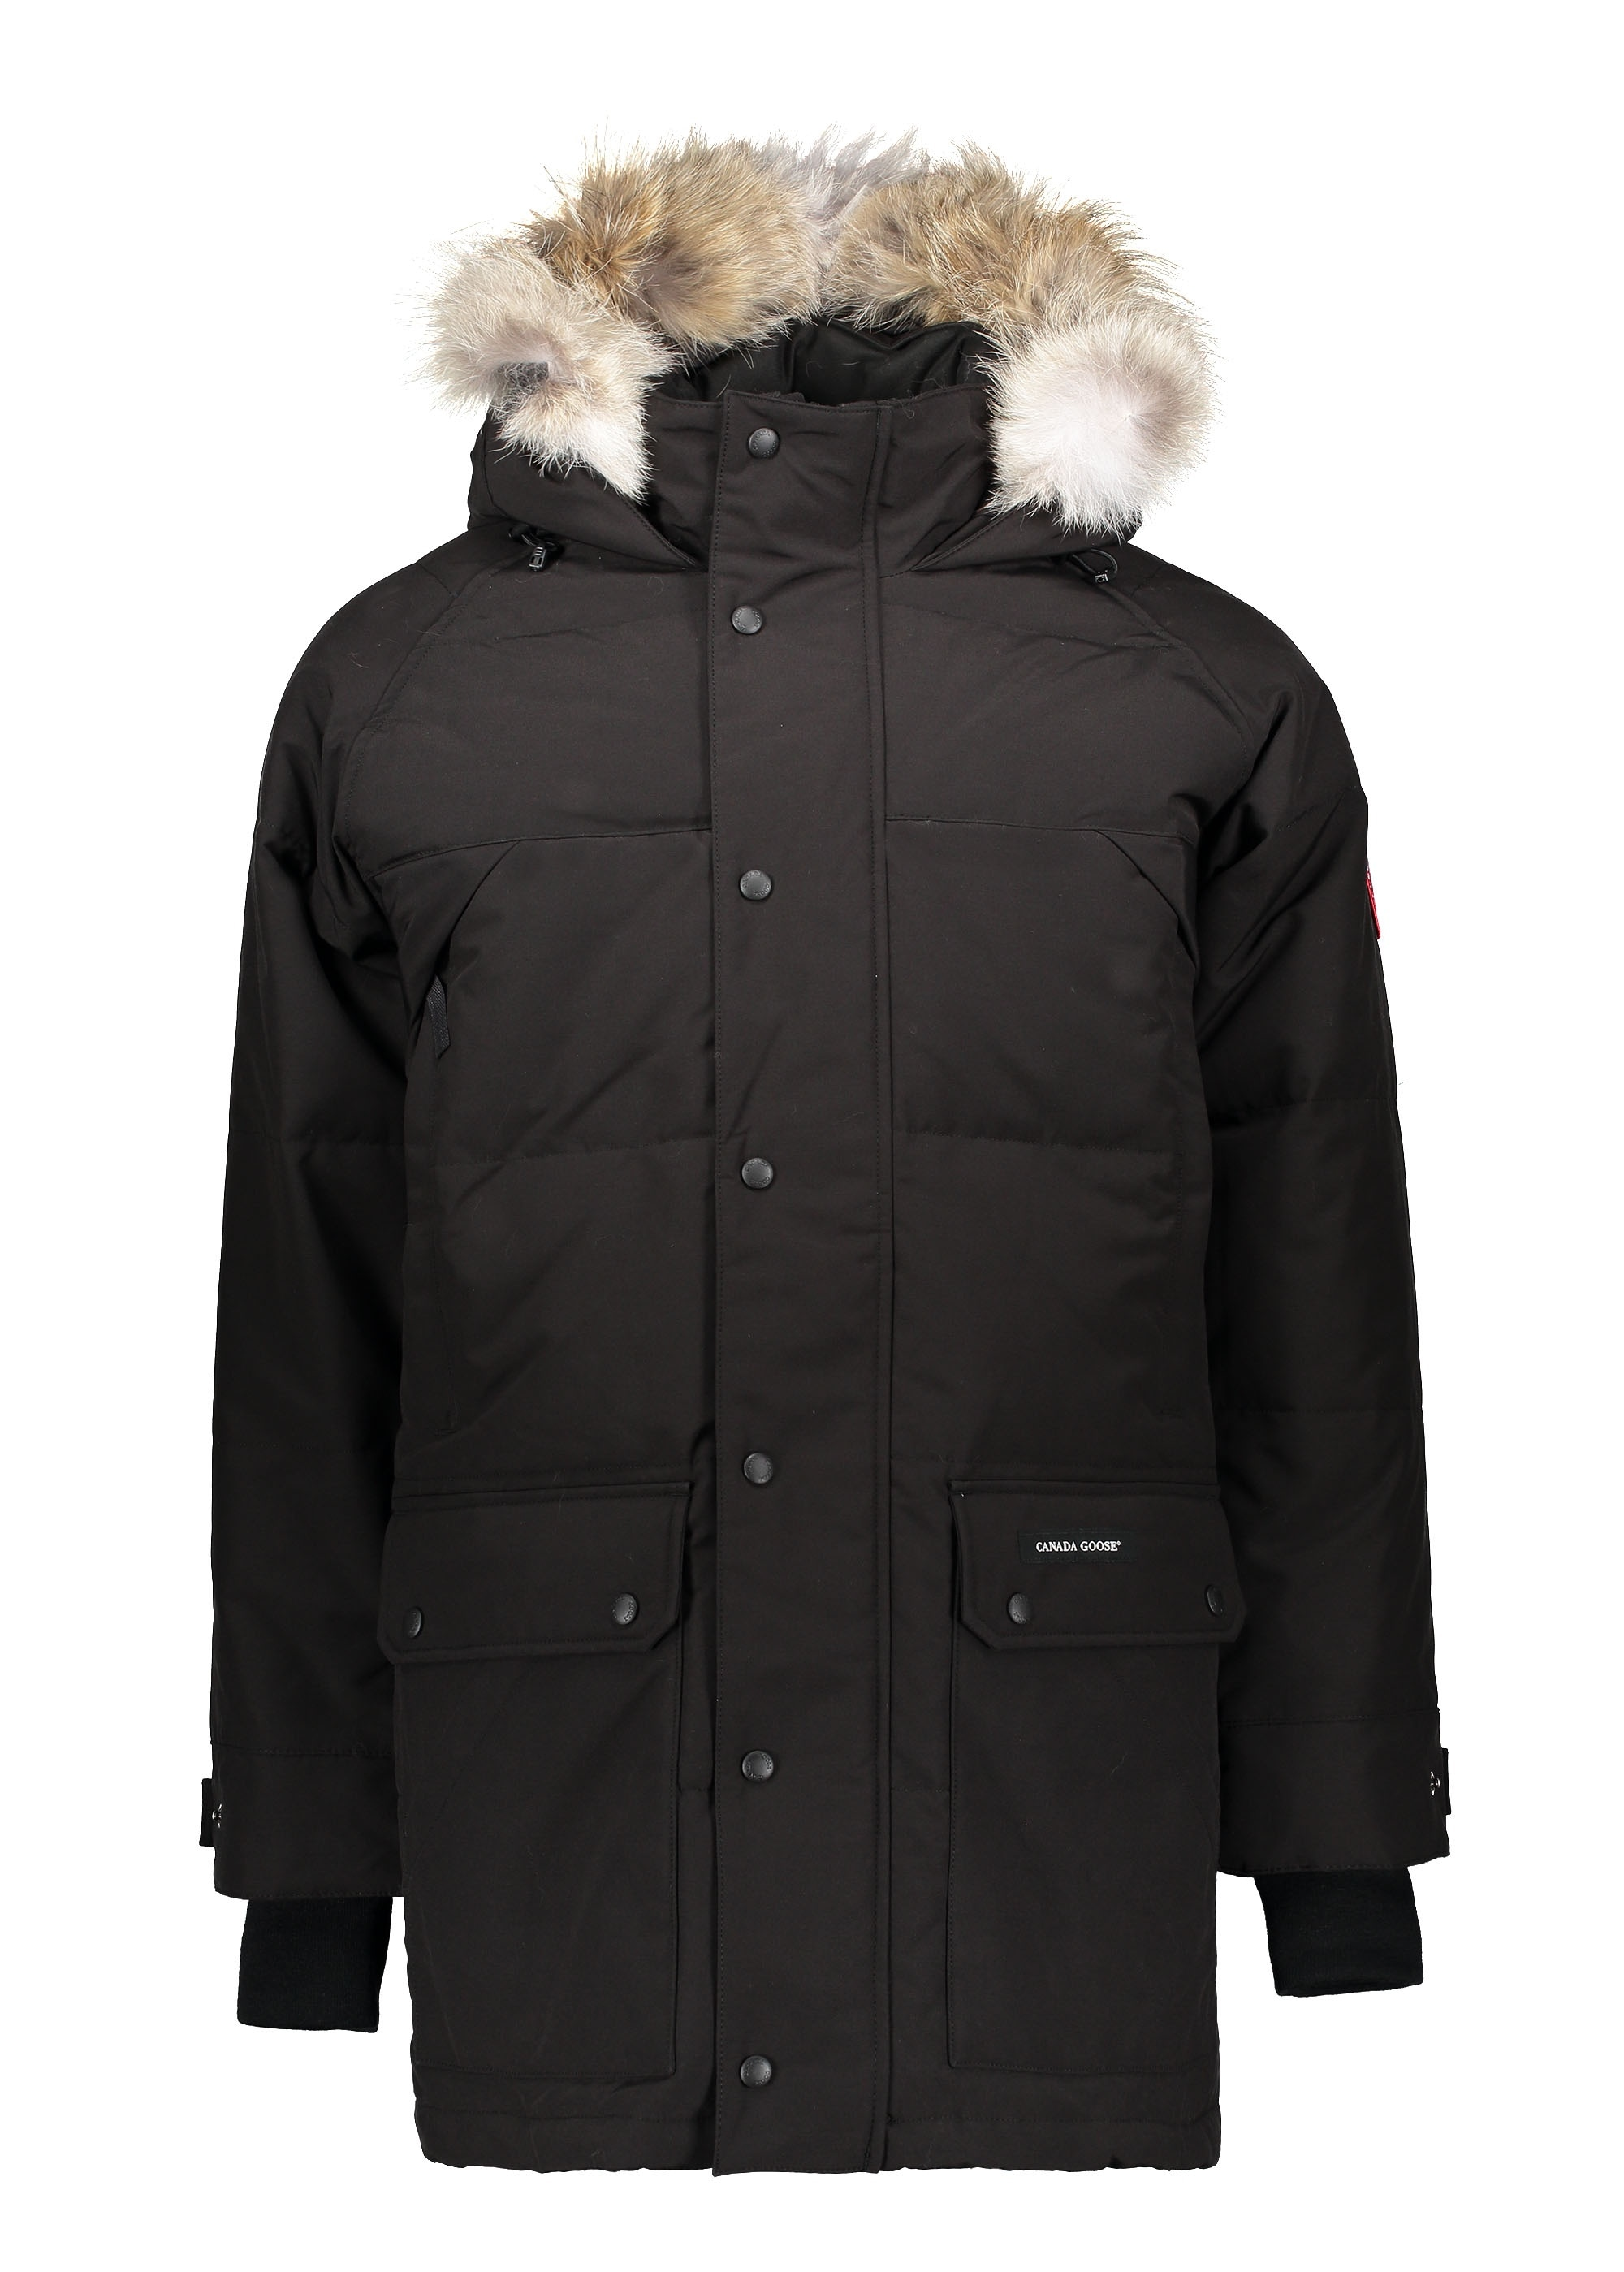 Canada Goose Emory Parka - Black - Jackets from Triads UK f5b214e2a7d7